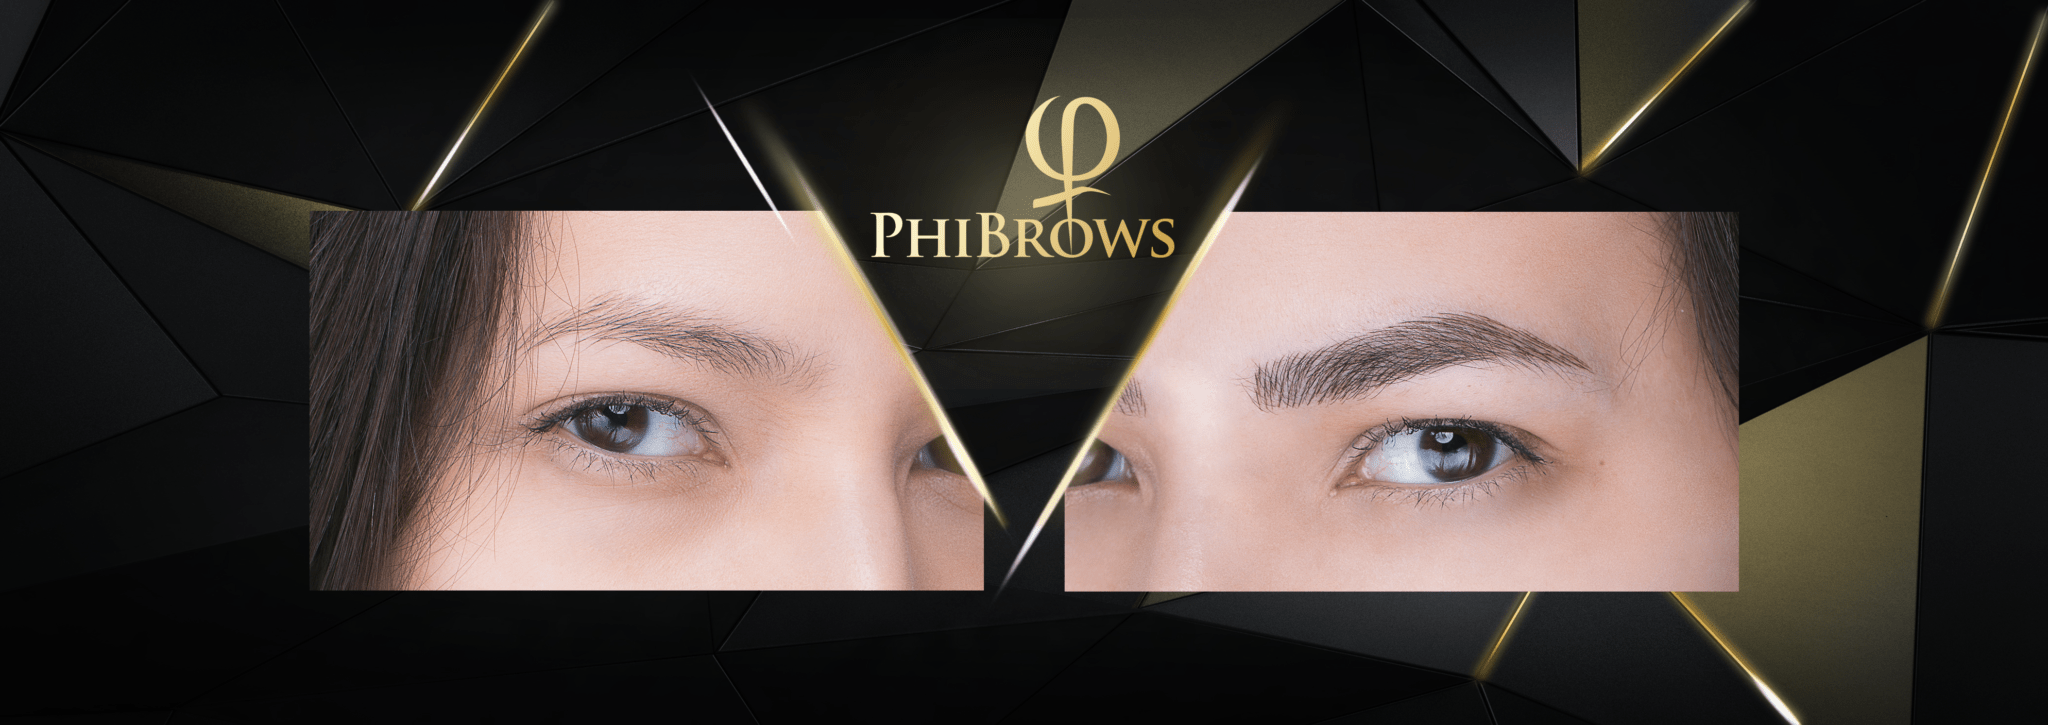 PHIBROWS-Before-After